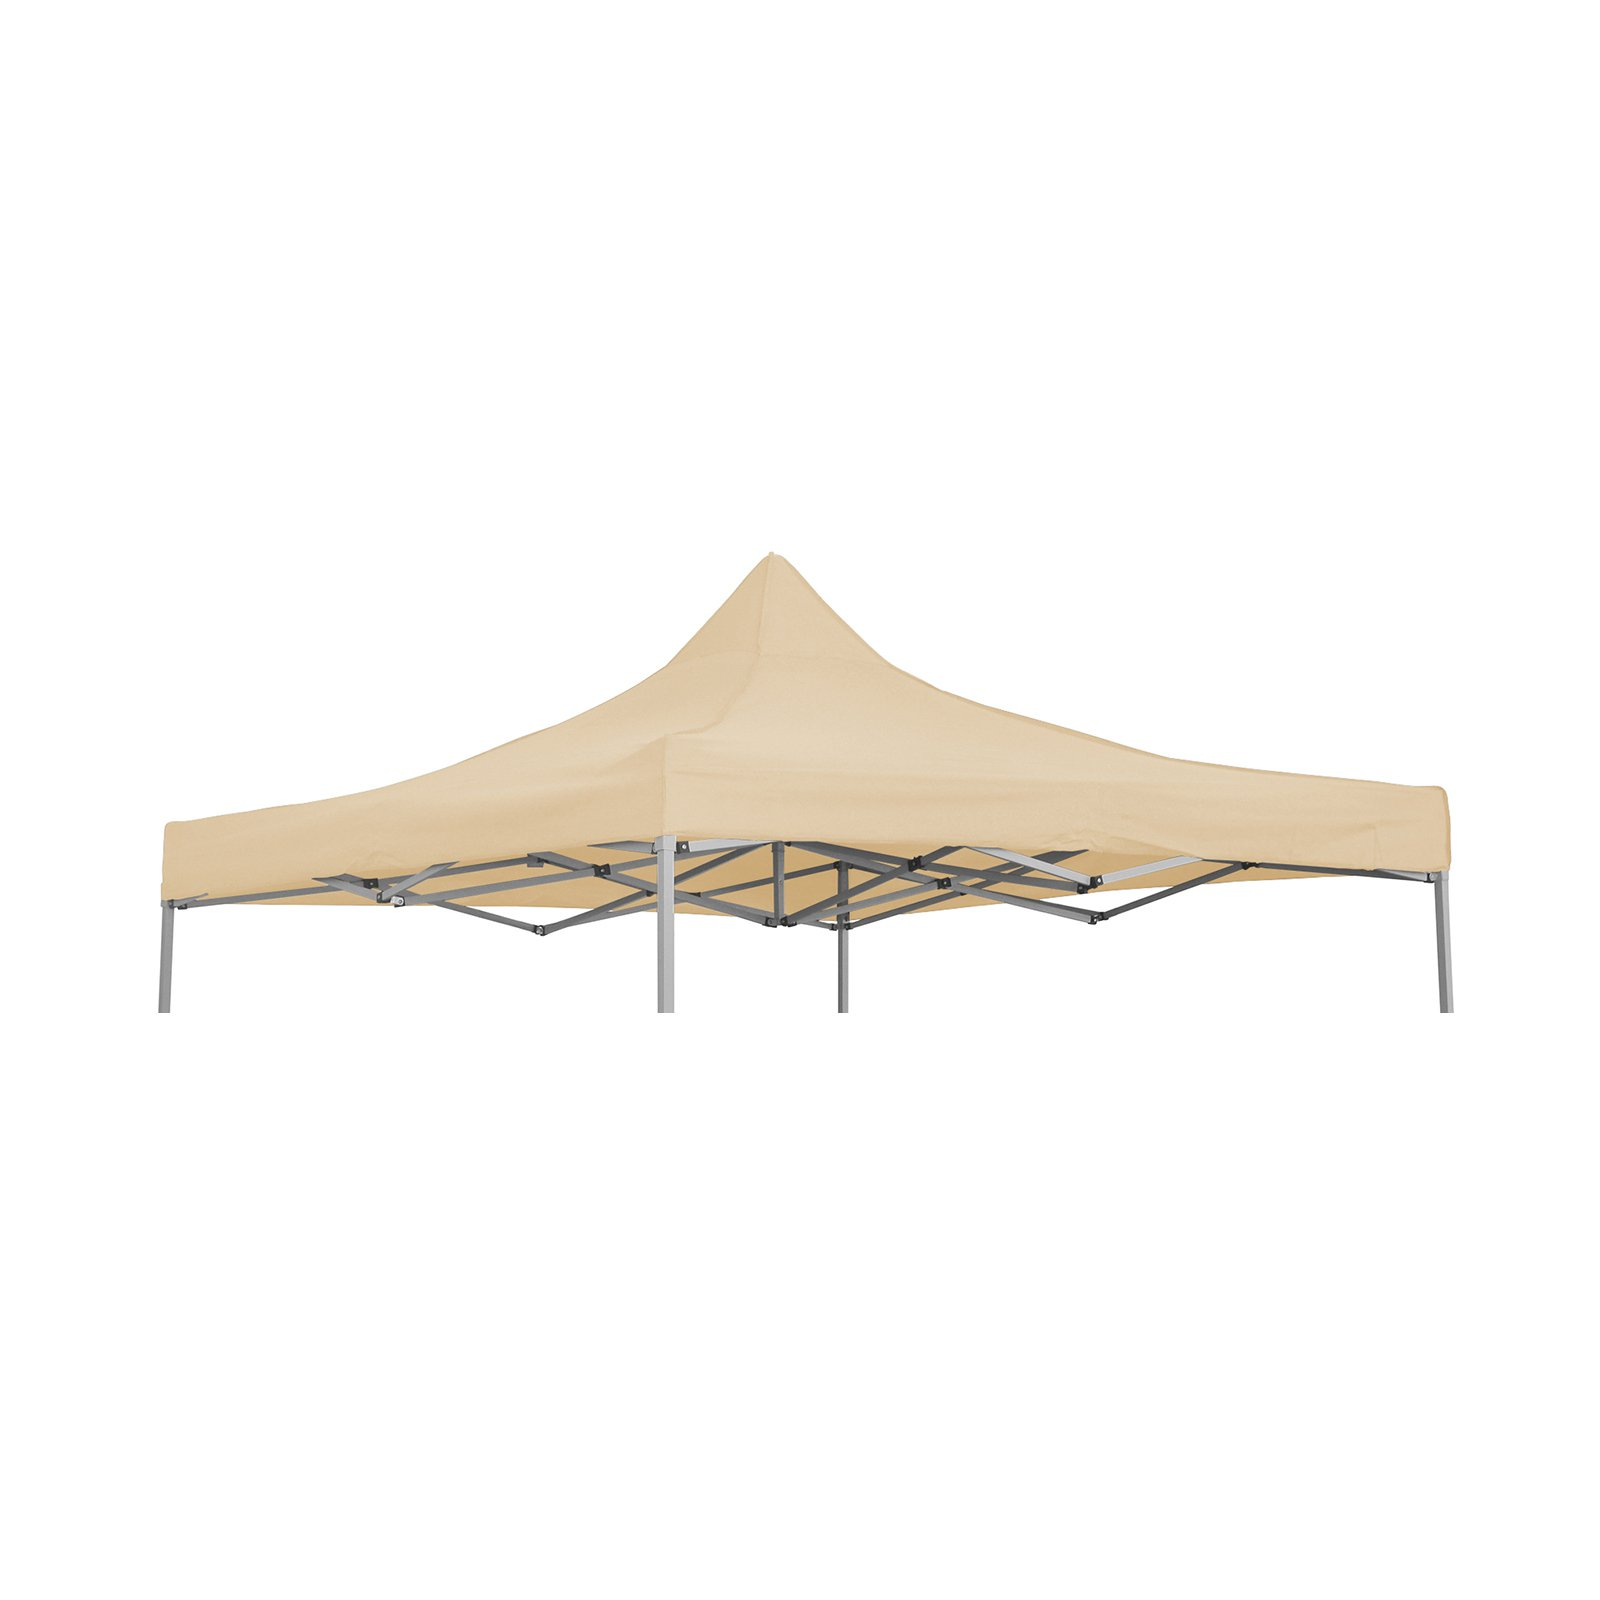 Trademark Innovations 9.6 x 9.6 ft. Square Replacement Canopy Gazebo Top  sc 1 st  Walmart & Trademark Innovations 9.6 x 9.6 ft. Square Replacement Canopy ...